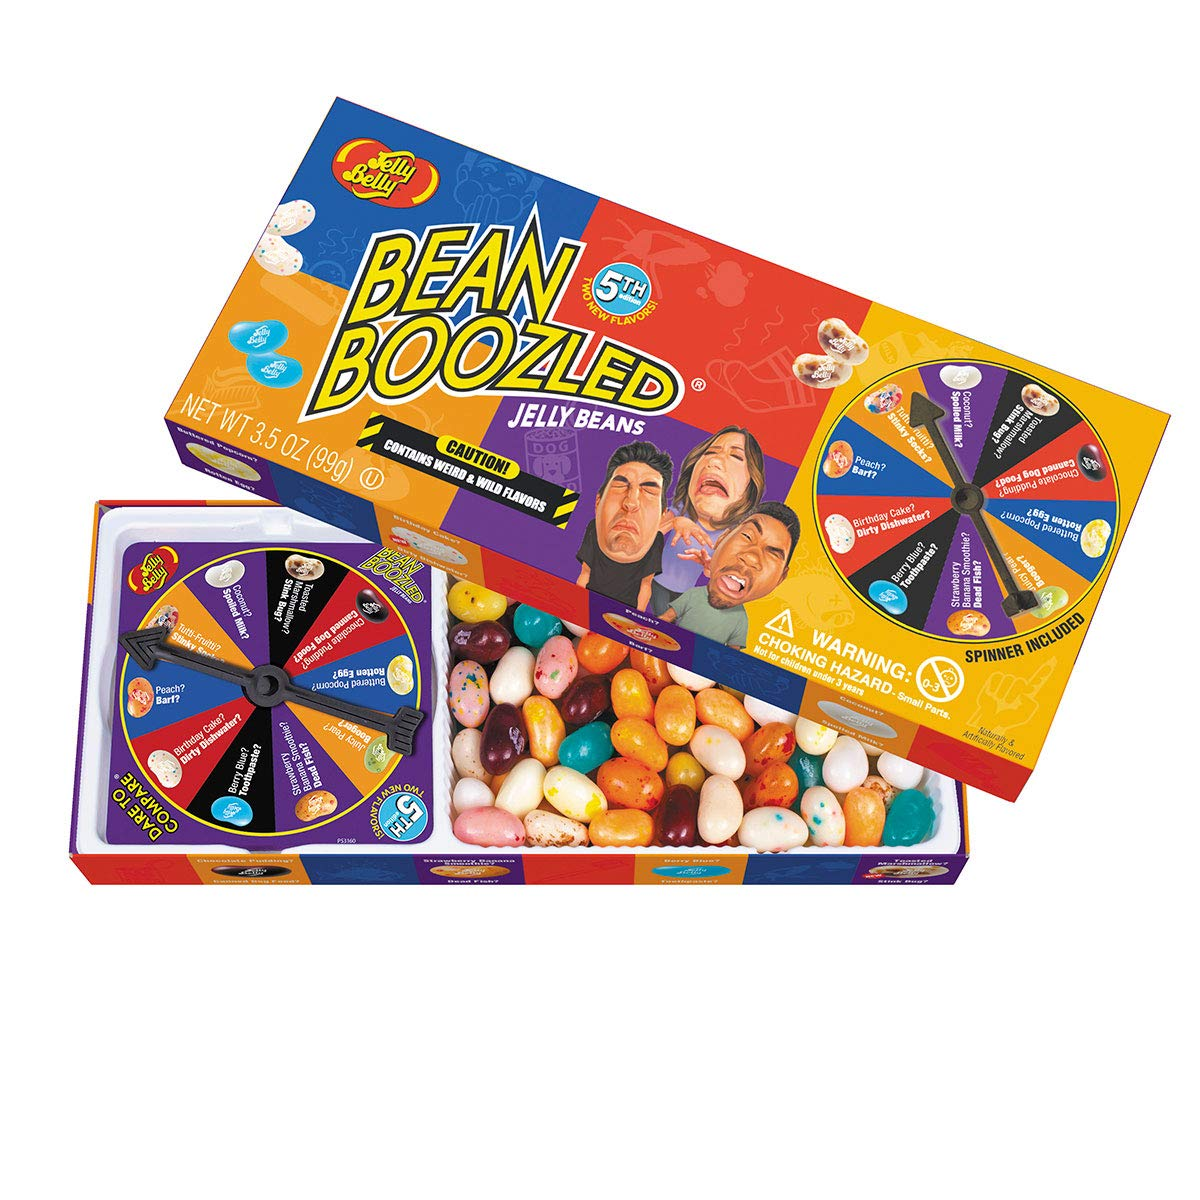 Jelly Belly BeanBoozled Jelly Beans Spinner Gift Box, 5th Edition, 3.5 Ounce (Pack of 1) by Jelly Belly